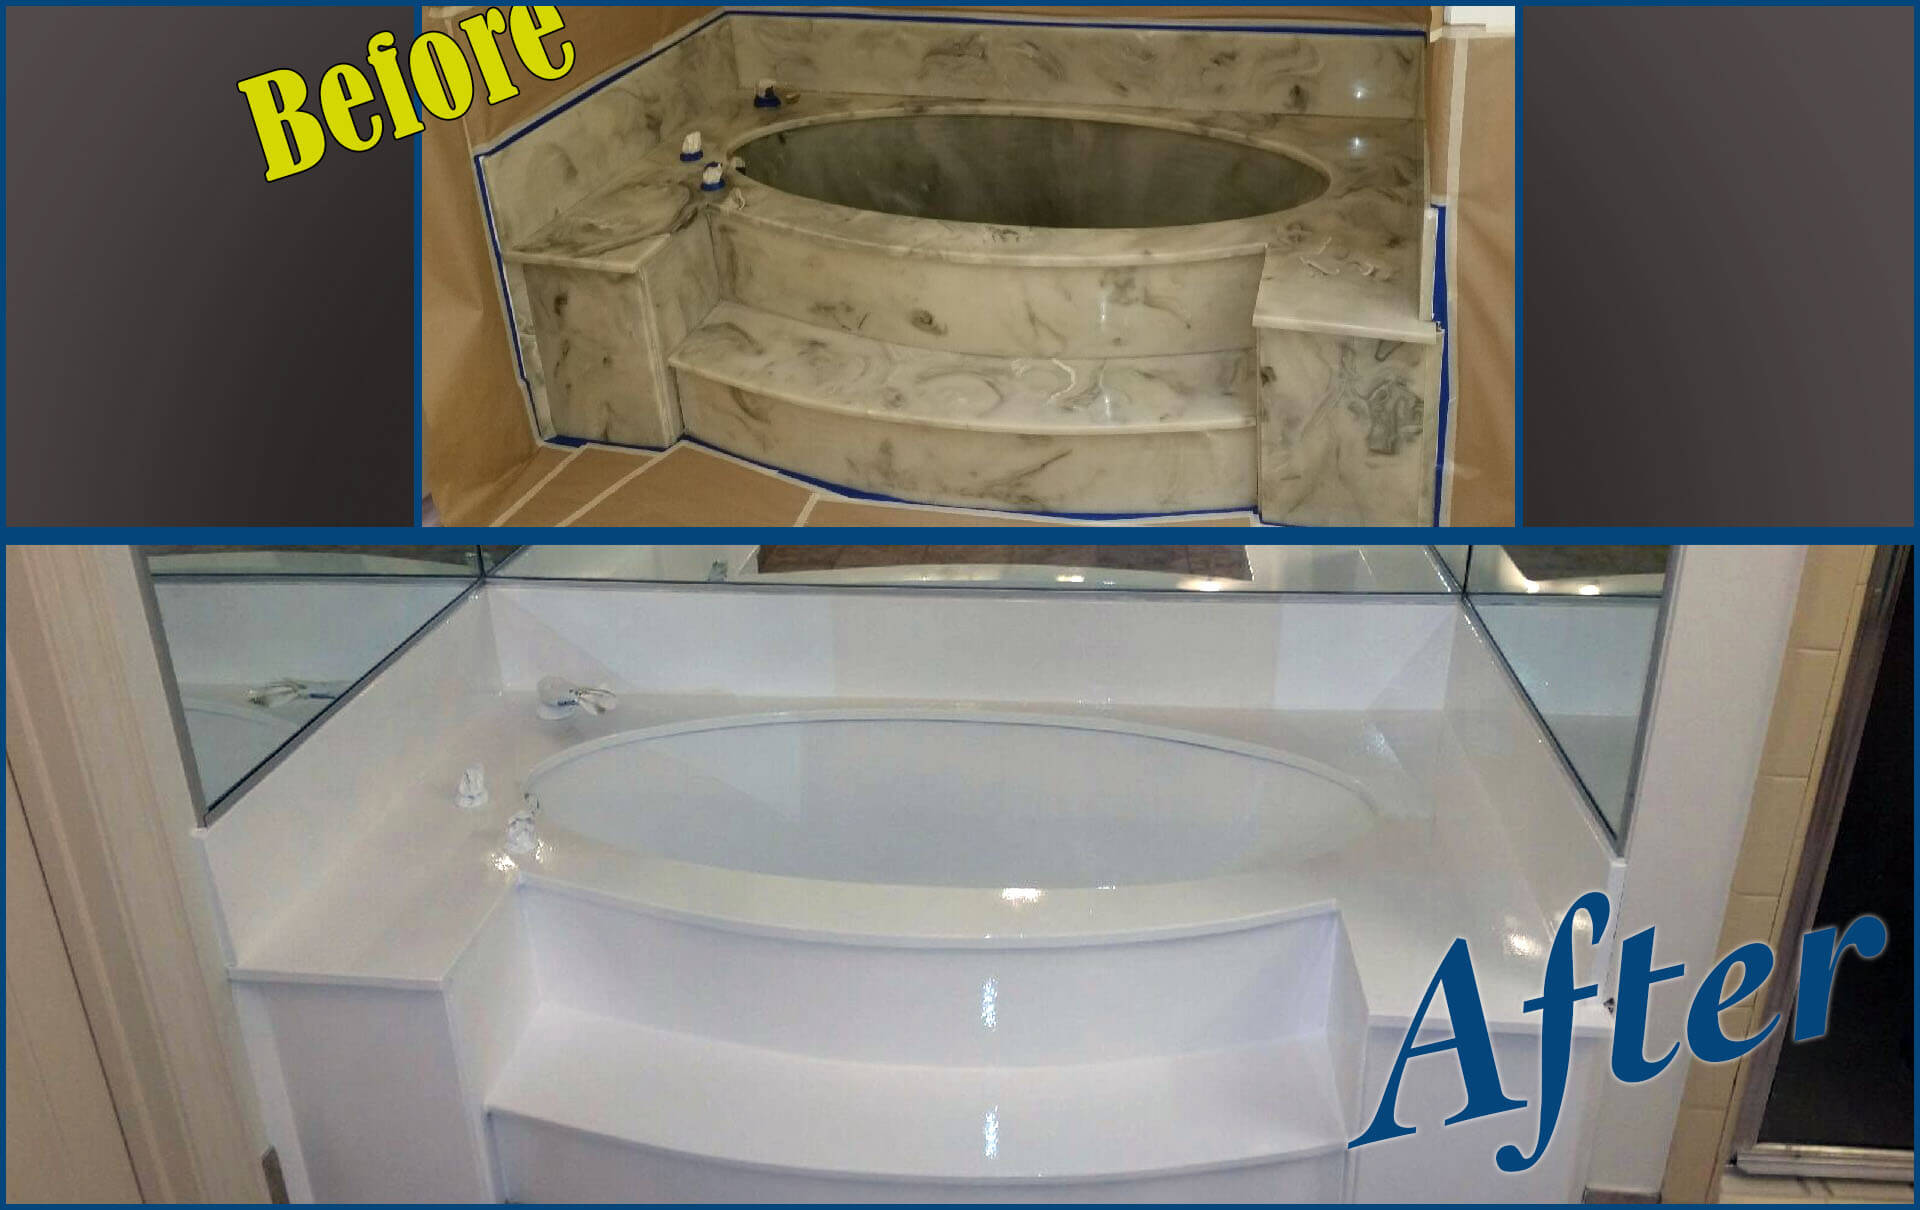 Tub Resurfacing-Broward Bath Tub Reglazing & Tub Resurfacing Contractors-We do Water Bathroom Bathtub Reglazing, Bathtub Refinishing, Tub Resurfacing, Bathtub Restoration, Countertop Resurfacing, Ceramic Tile Refinishing, Acid Free Reglazing, Commercial Bathroom Reglazing, and more